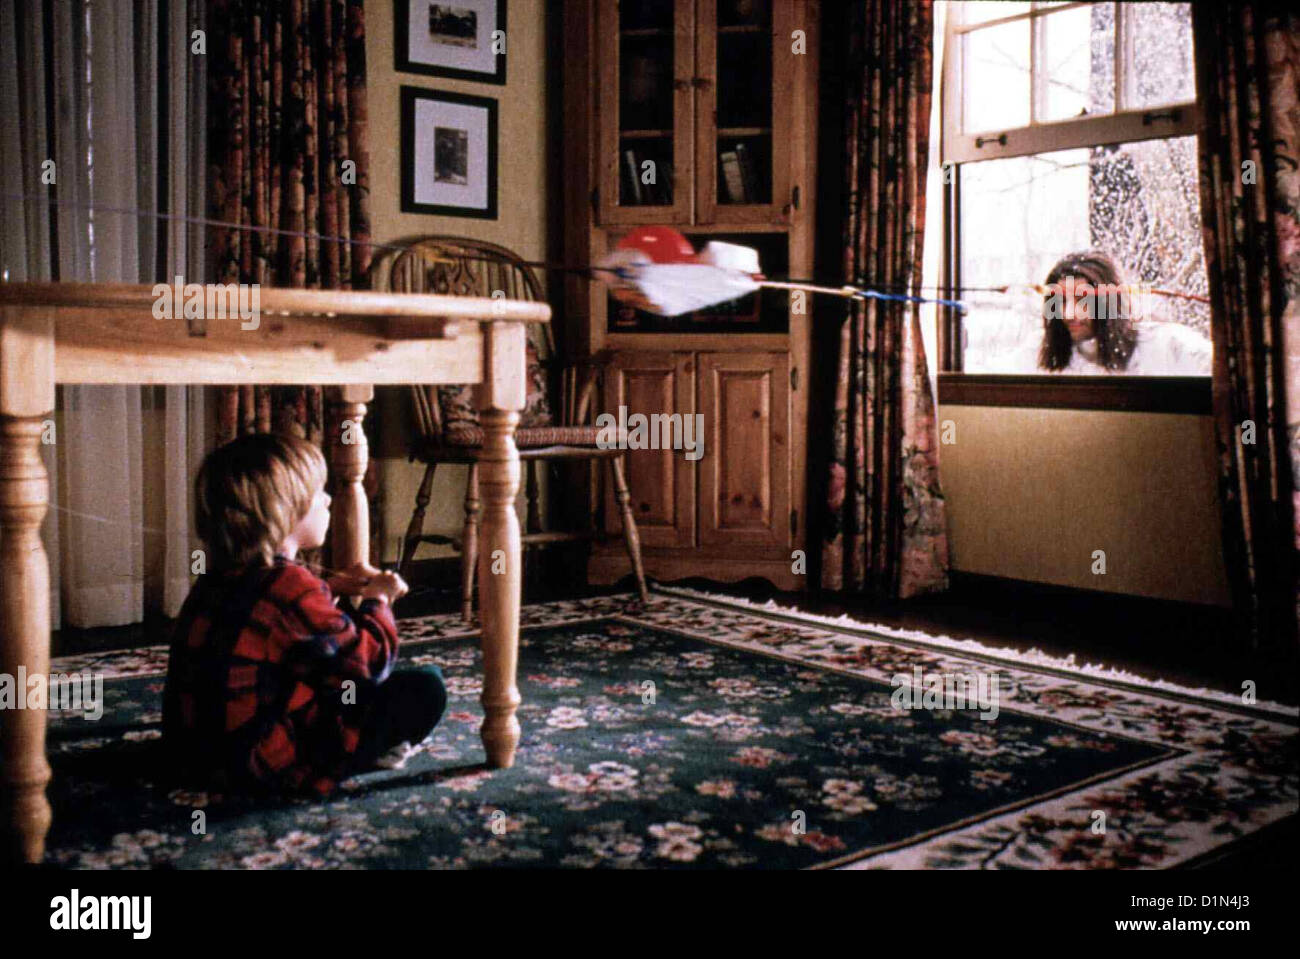 Home Alone 3 High Resolution Stock Photography And Images Alamy